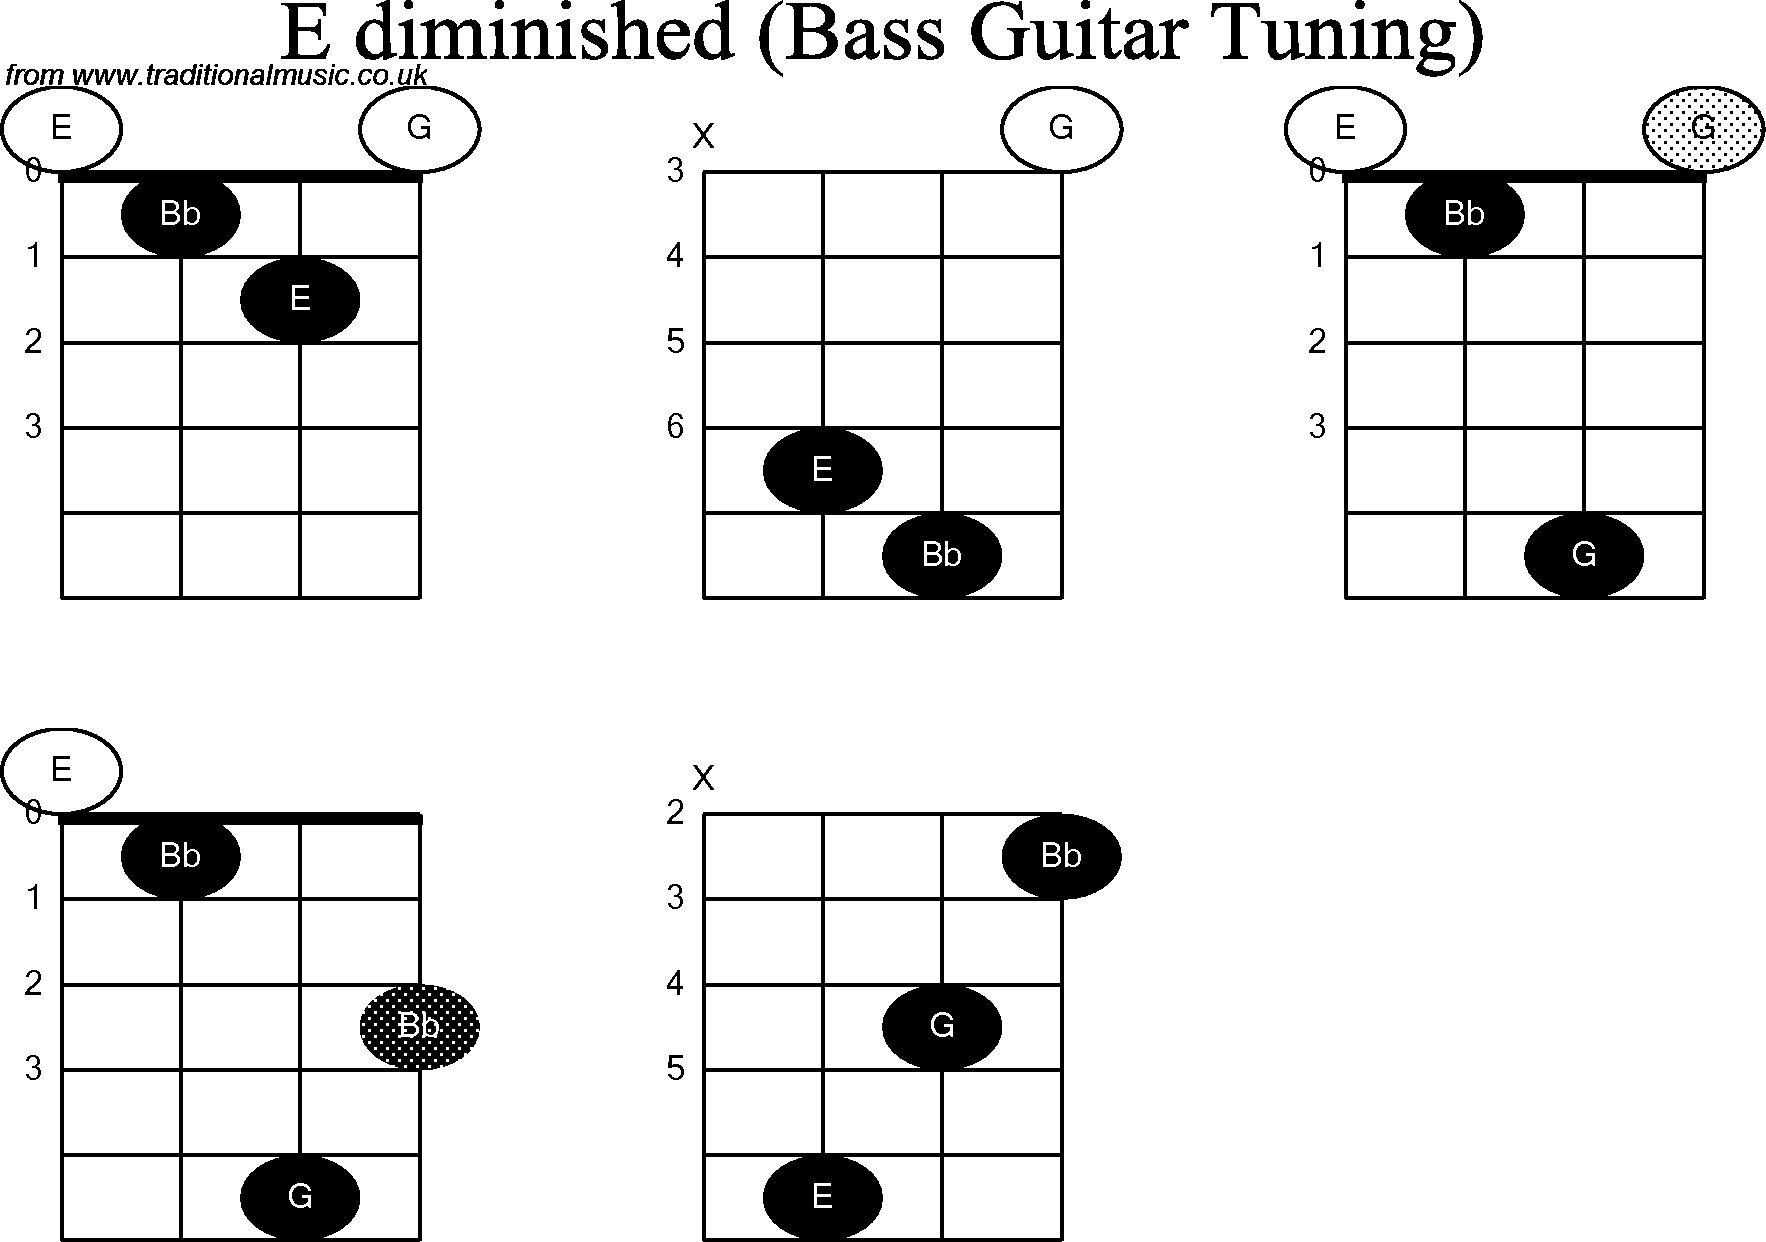 Basic Bass Guitar Chords Chart images